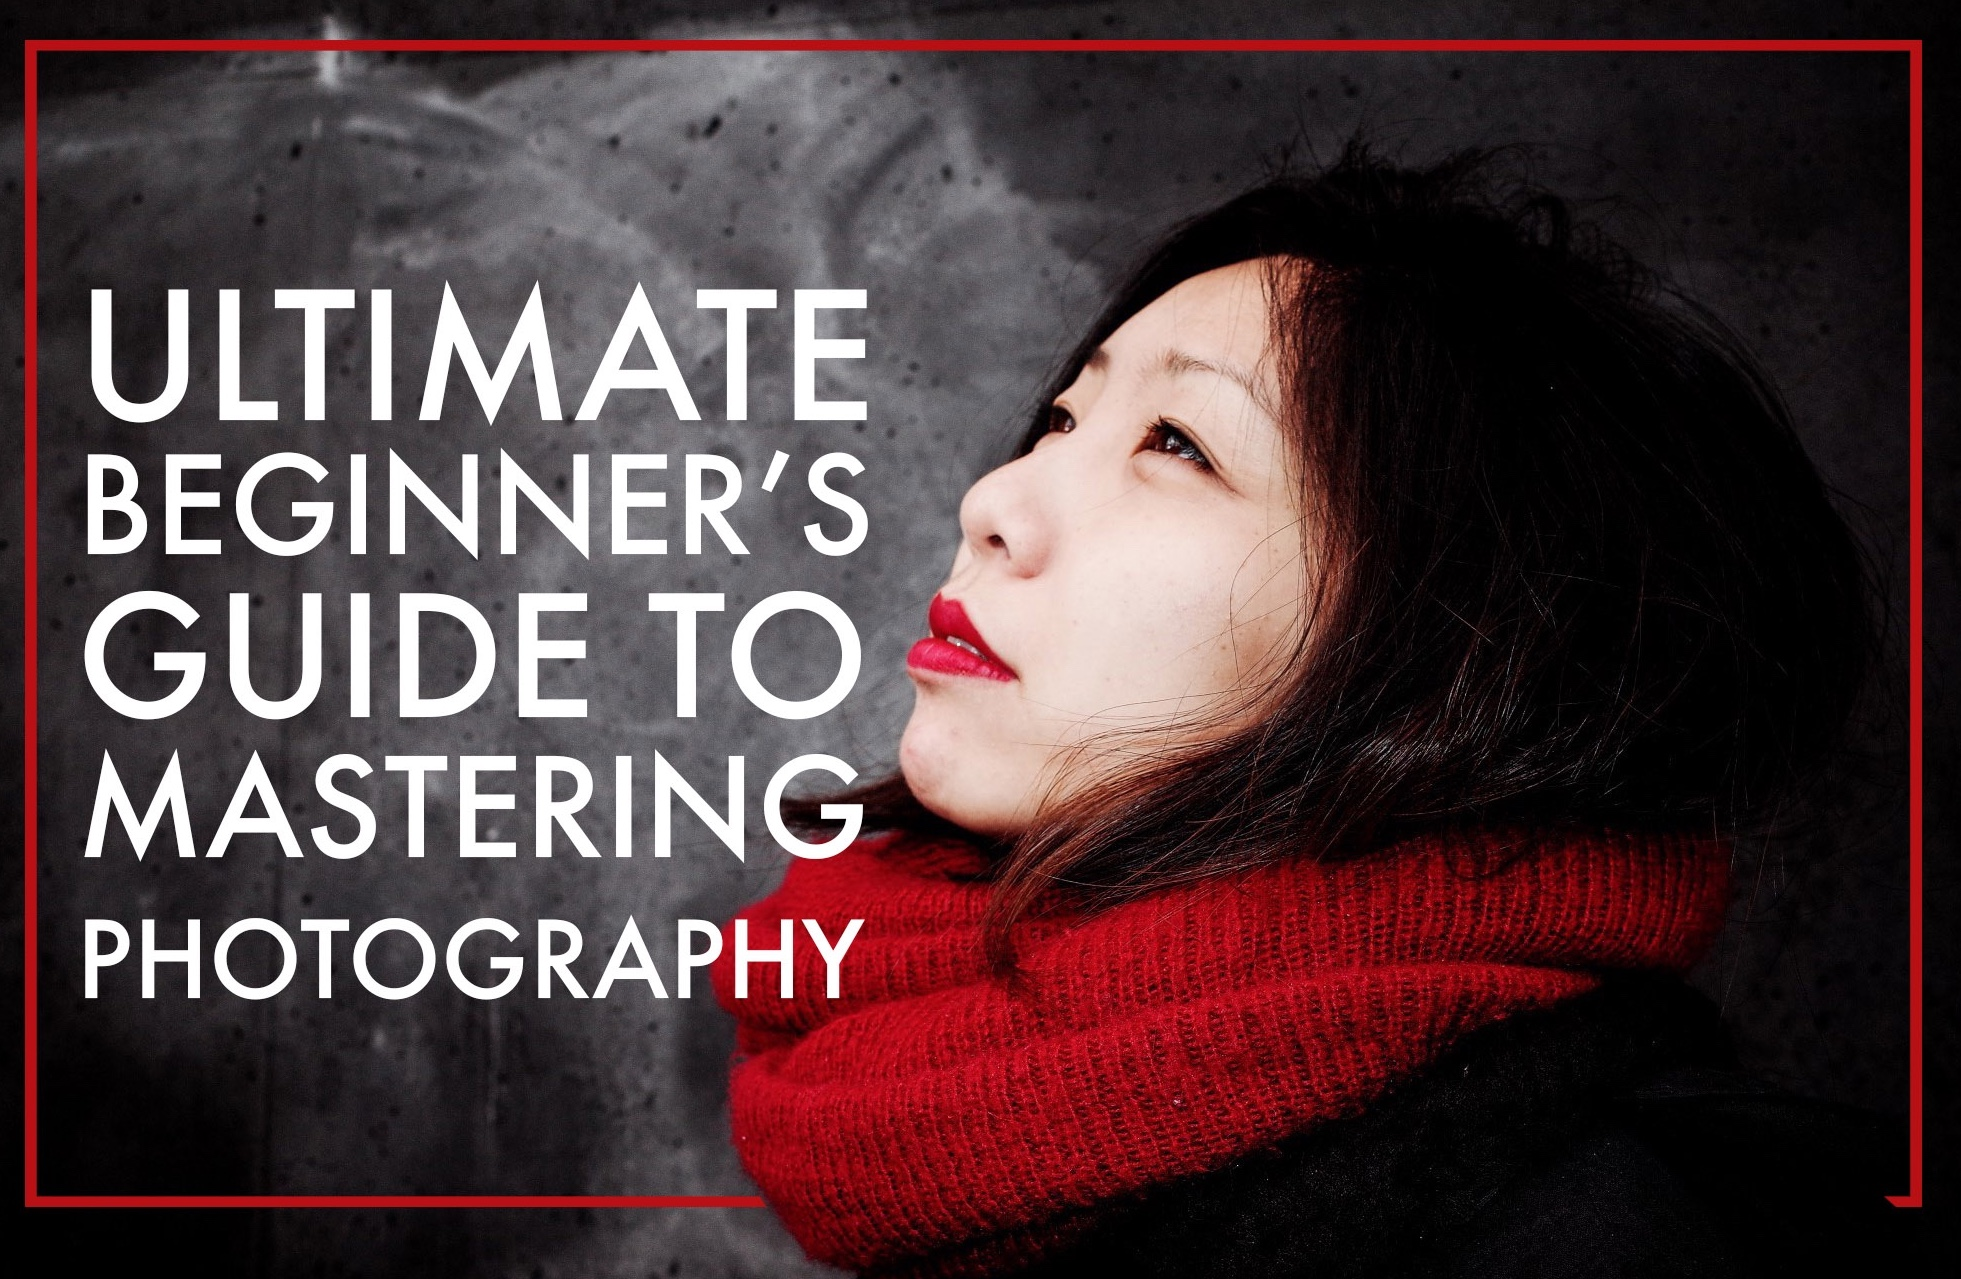 Ultimate Beginner's Guide to Mastering Photography